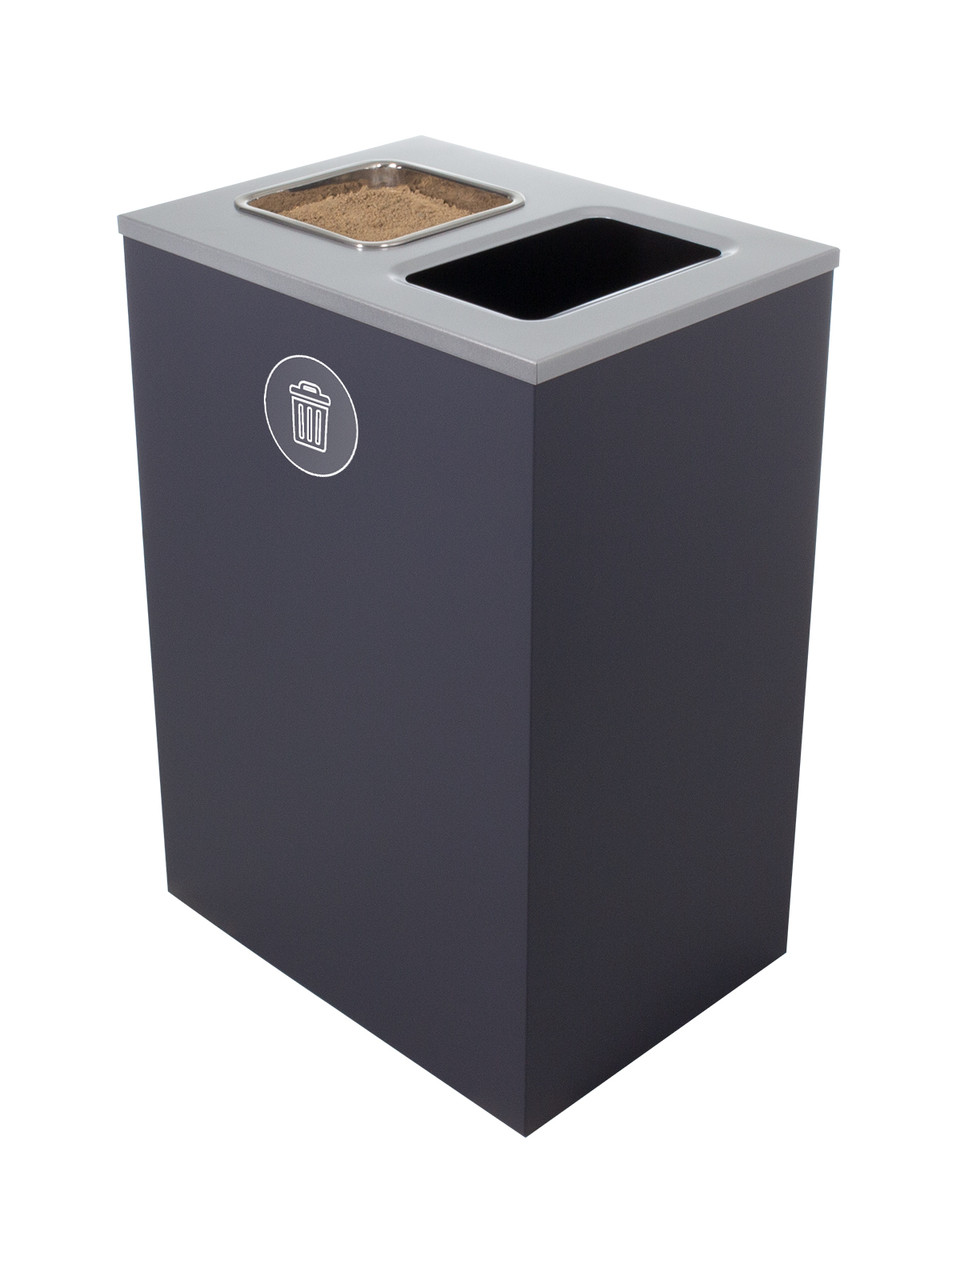 32 Gallon Steel Spectrum Cube XL Ash and Trash Can Gray 8107138-4